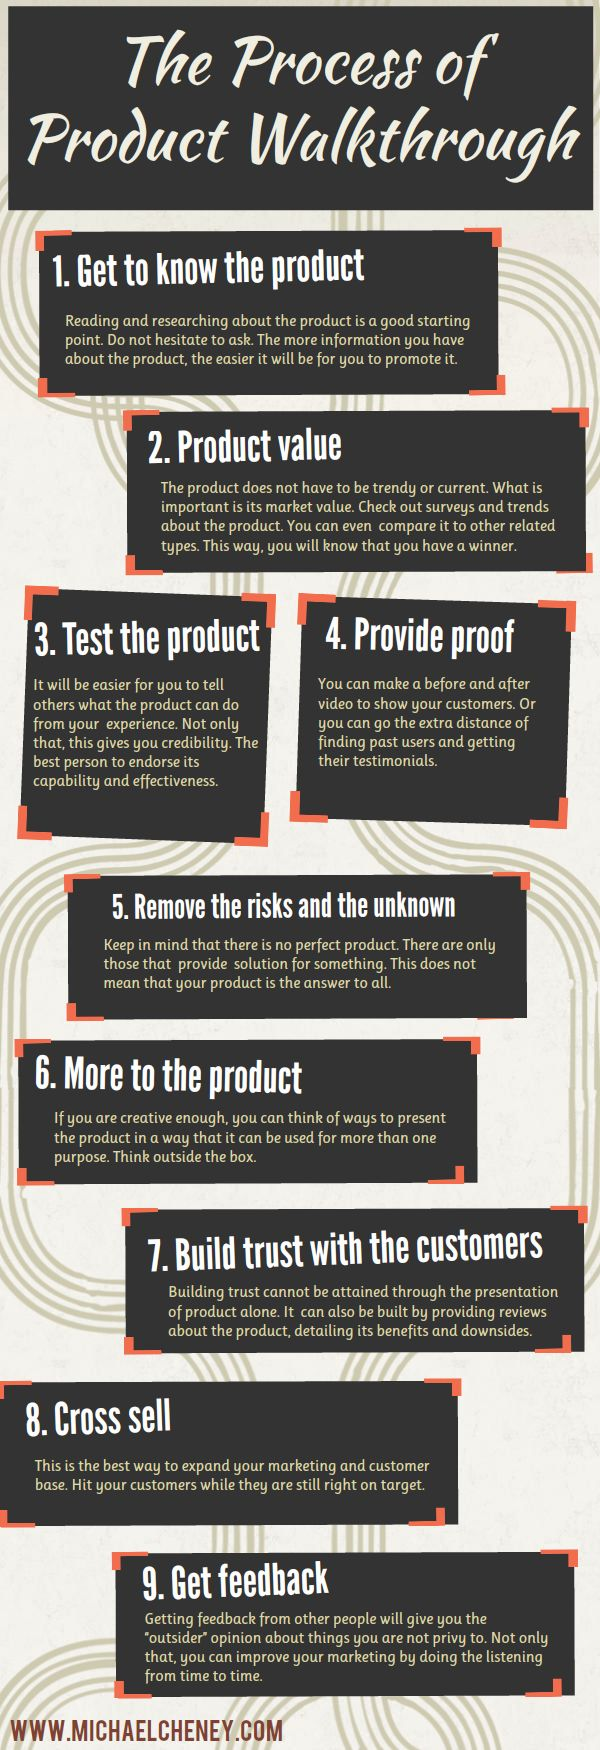 The Process of Product Walkthrough